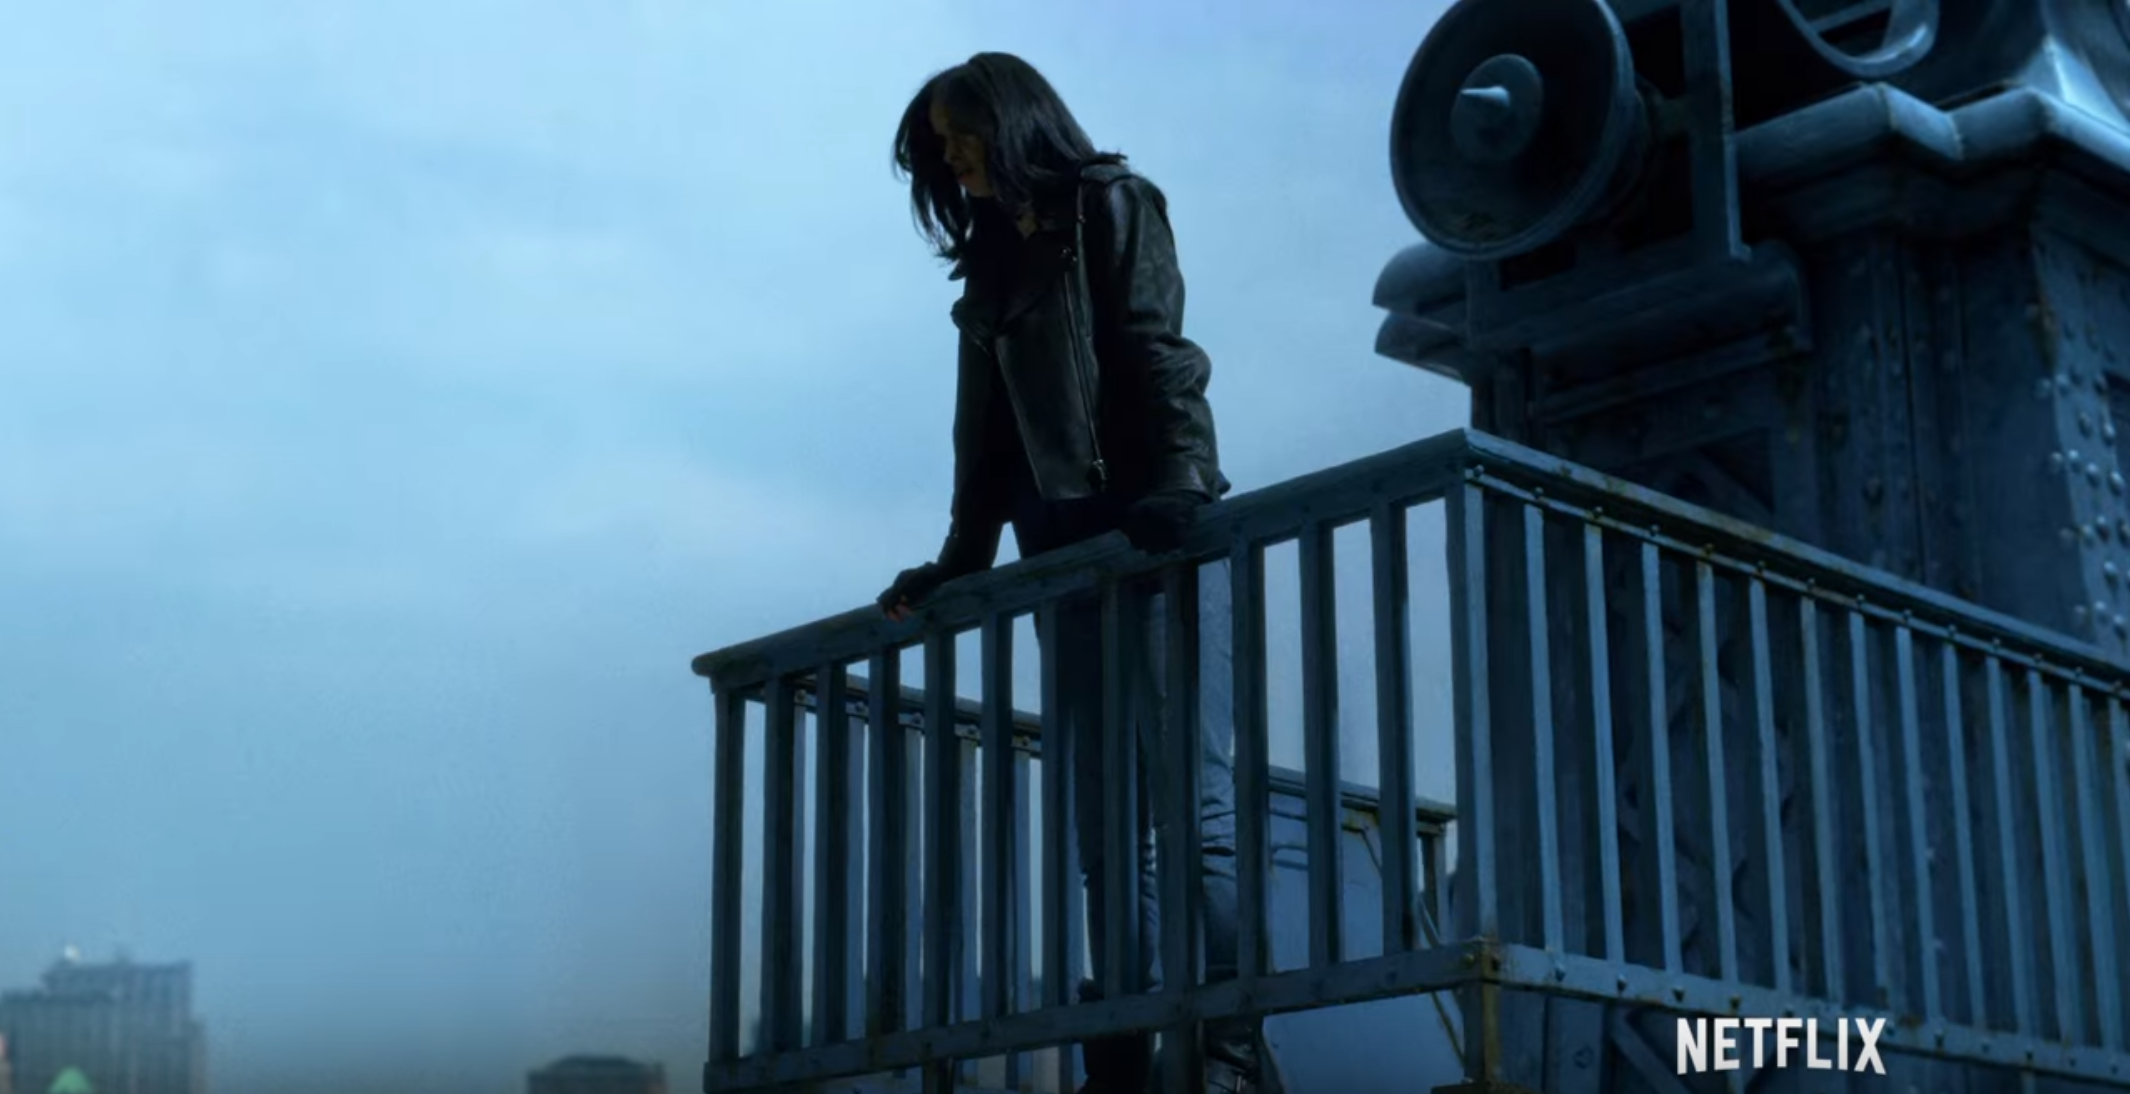 There Is Some Serious Ass Kicking In The 2nd Trailer Of Marvel's Jessica Jones Coming On Netflix